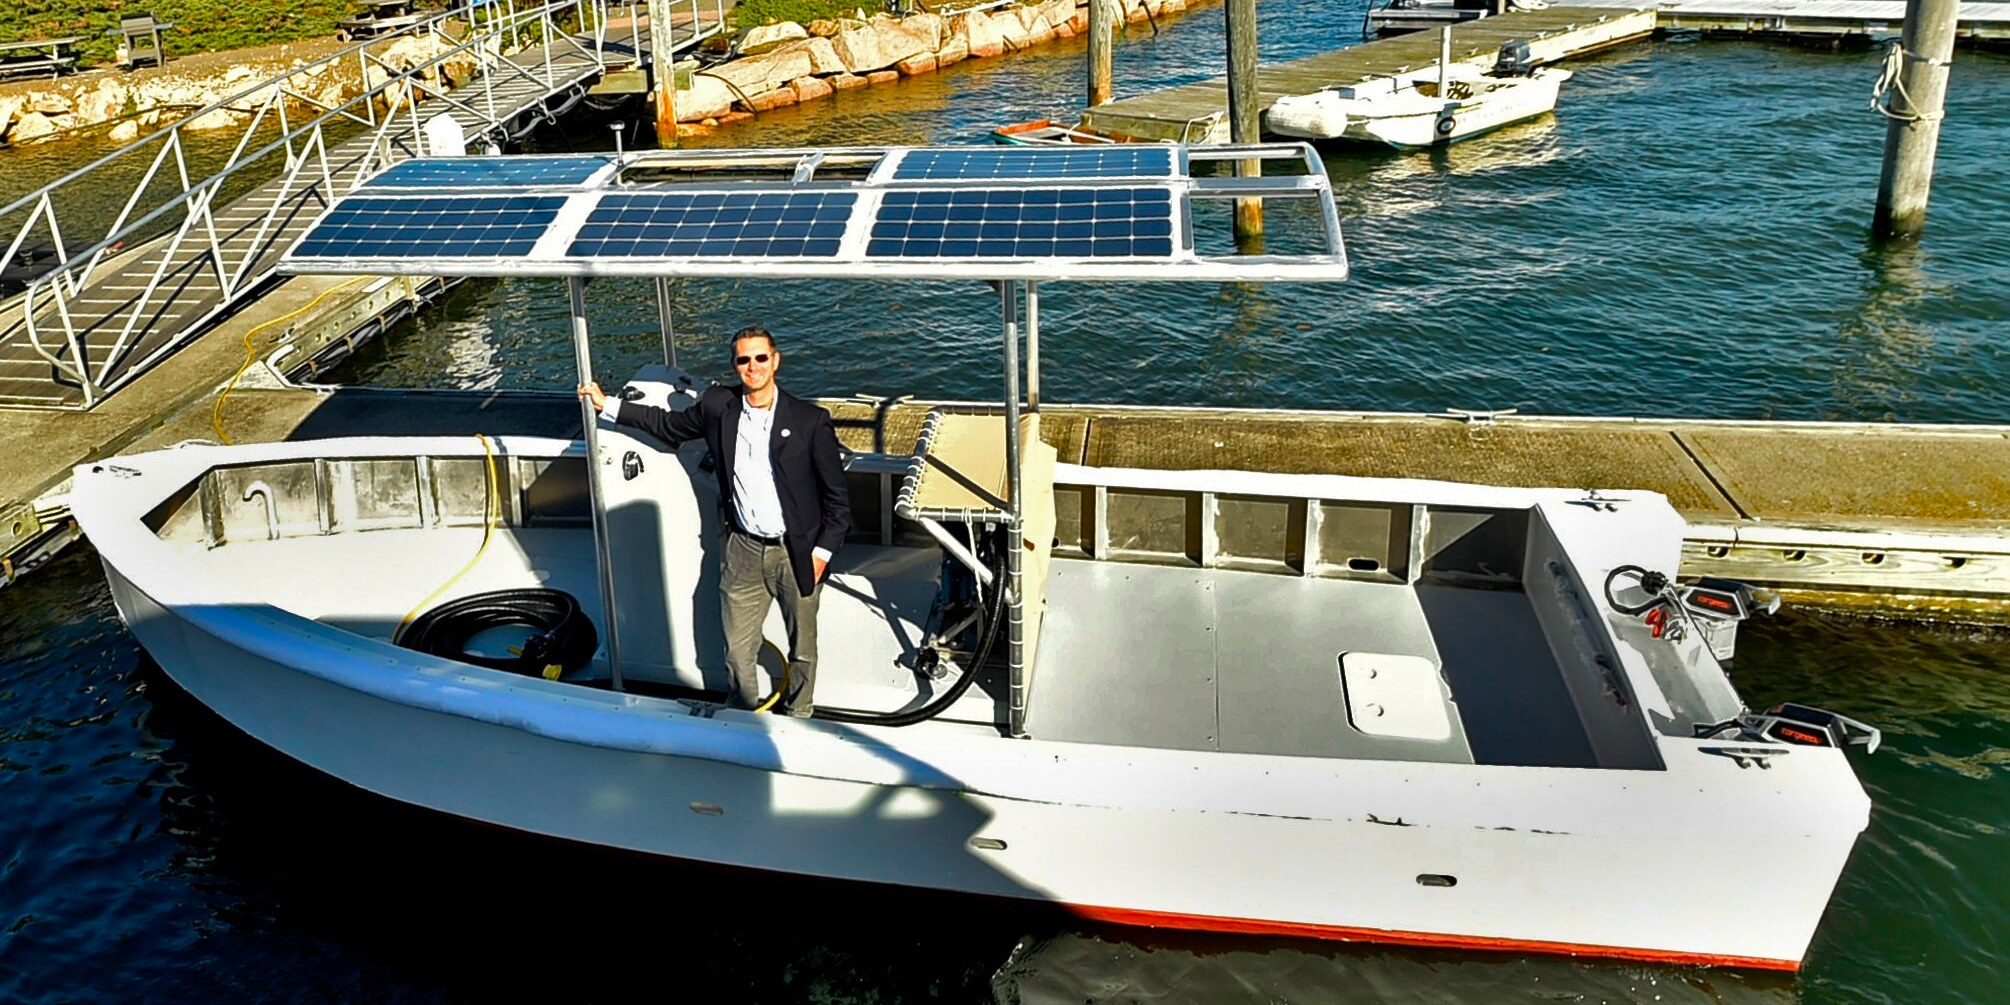 Yale's solar-powered electric boat is taking a lot of crap… literally!